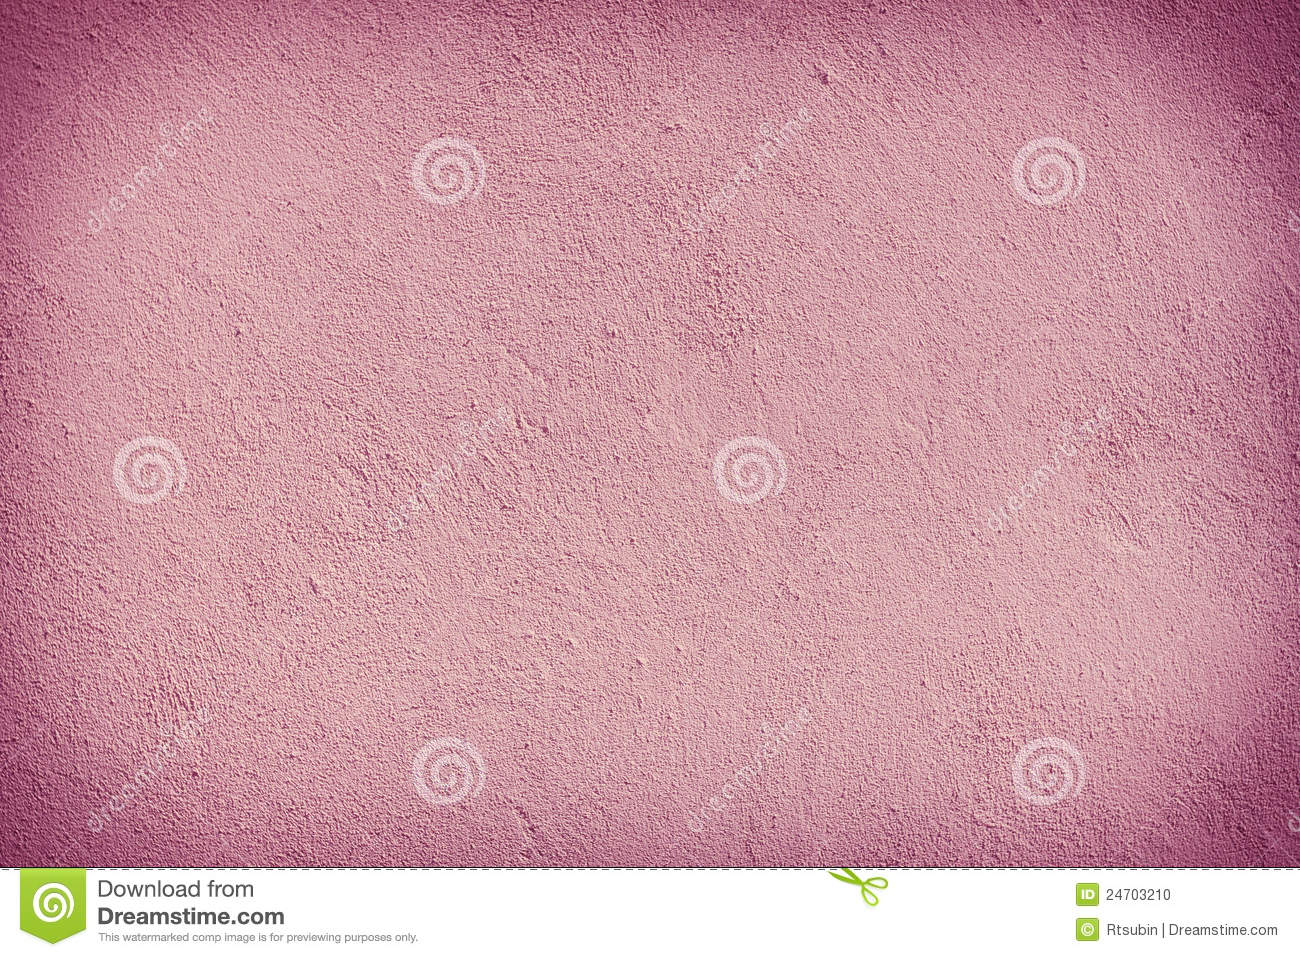 Pink Plaster Wall Texture Background Material Stock Photo